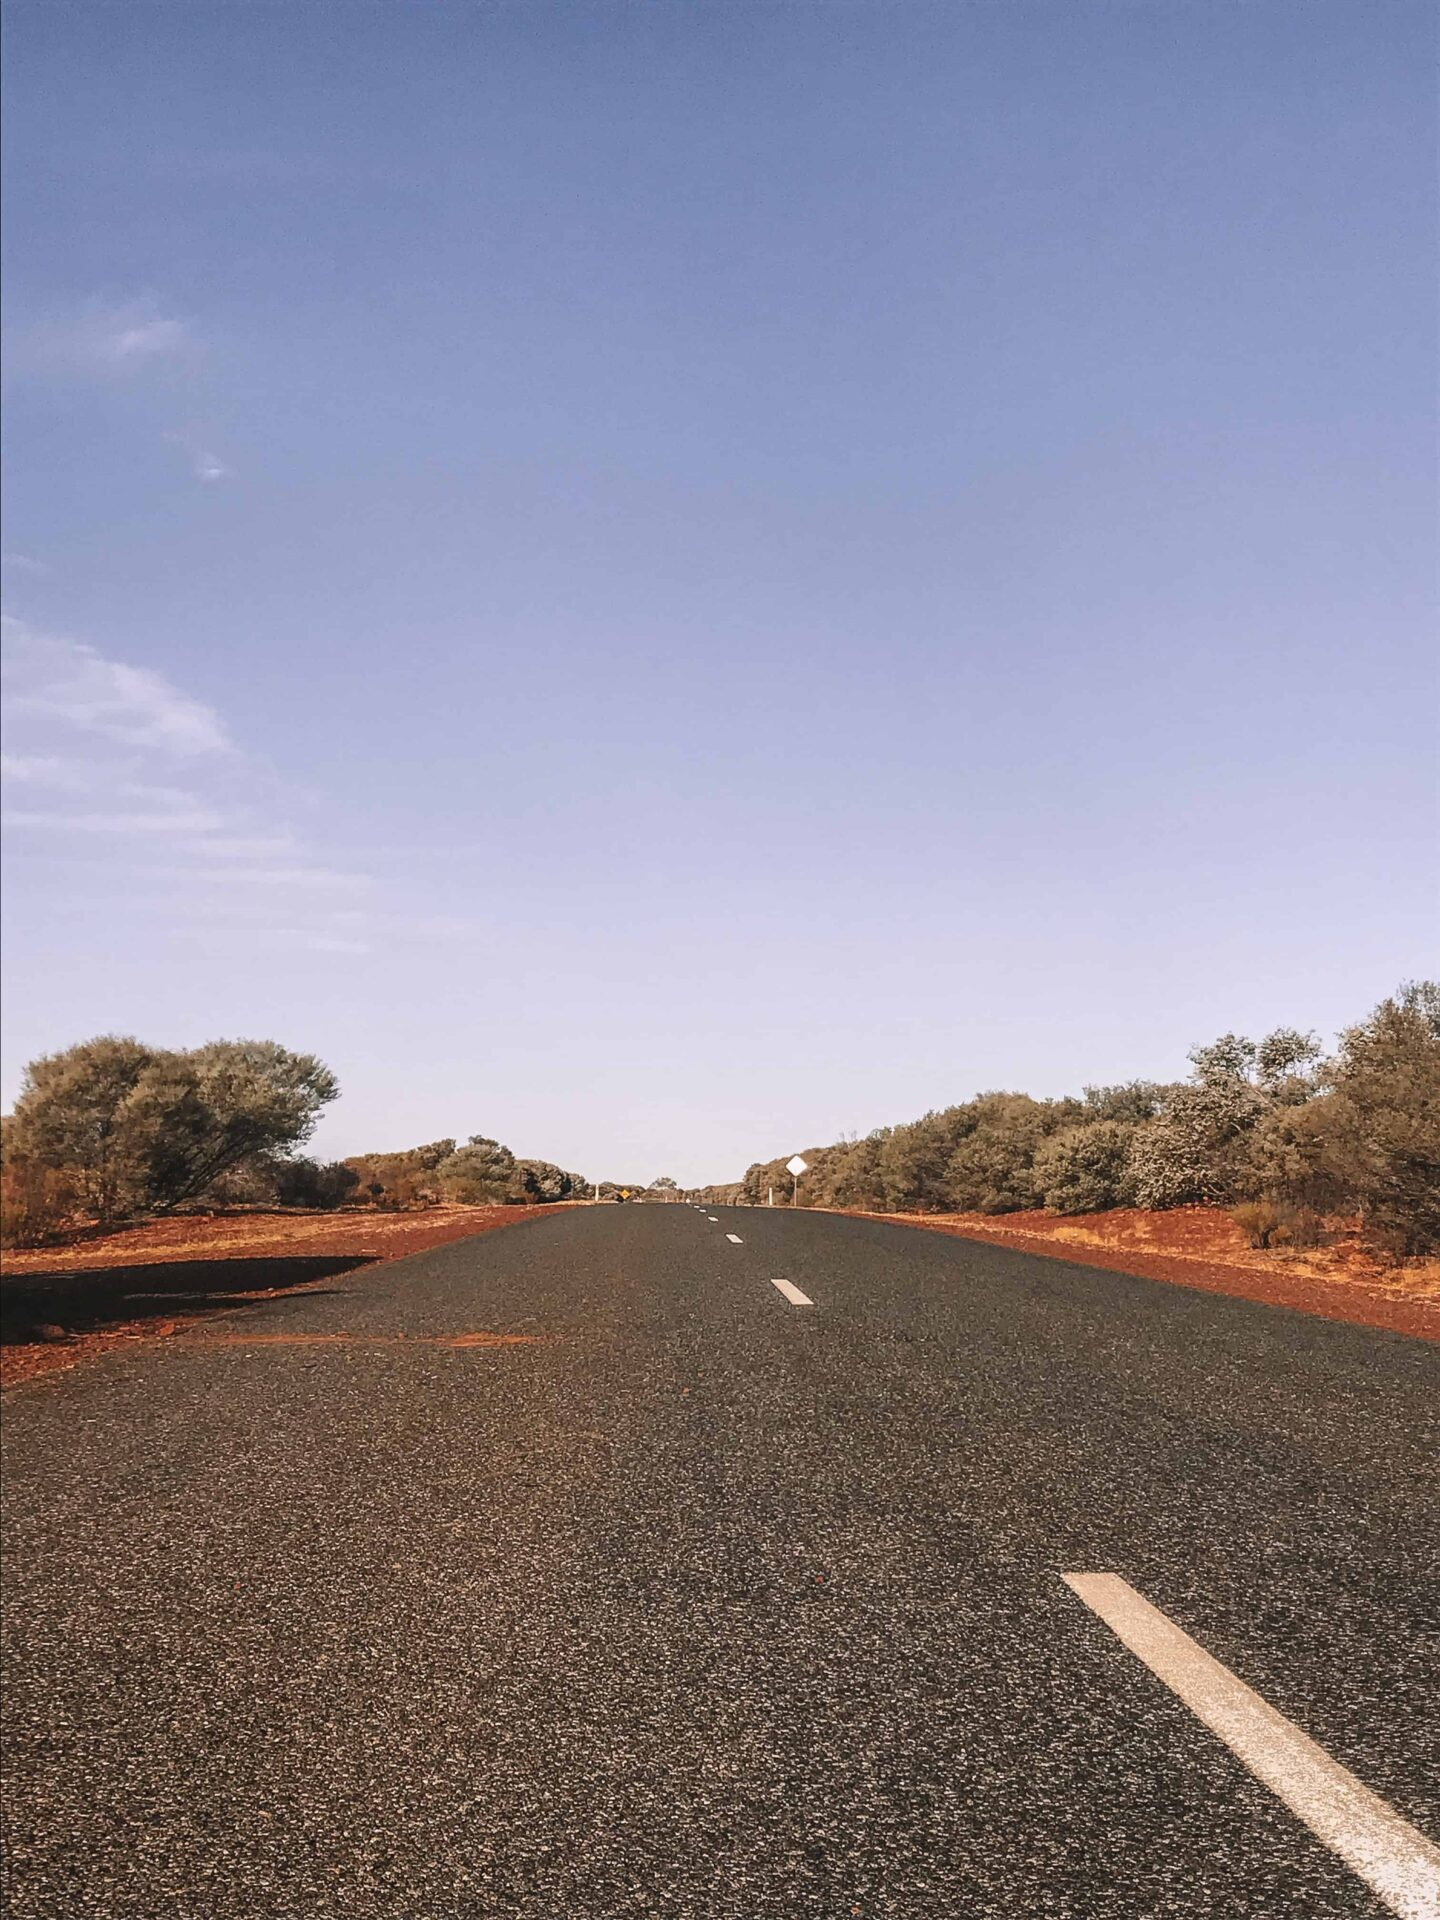 Greyhound is the best way to travel around Australia and get from point A to point B without having to sell your kidney to pay for it. Find out how to do it and where to go for the perfect itinerary for your Australian Road Trip!